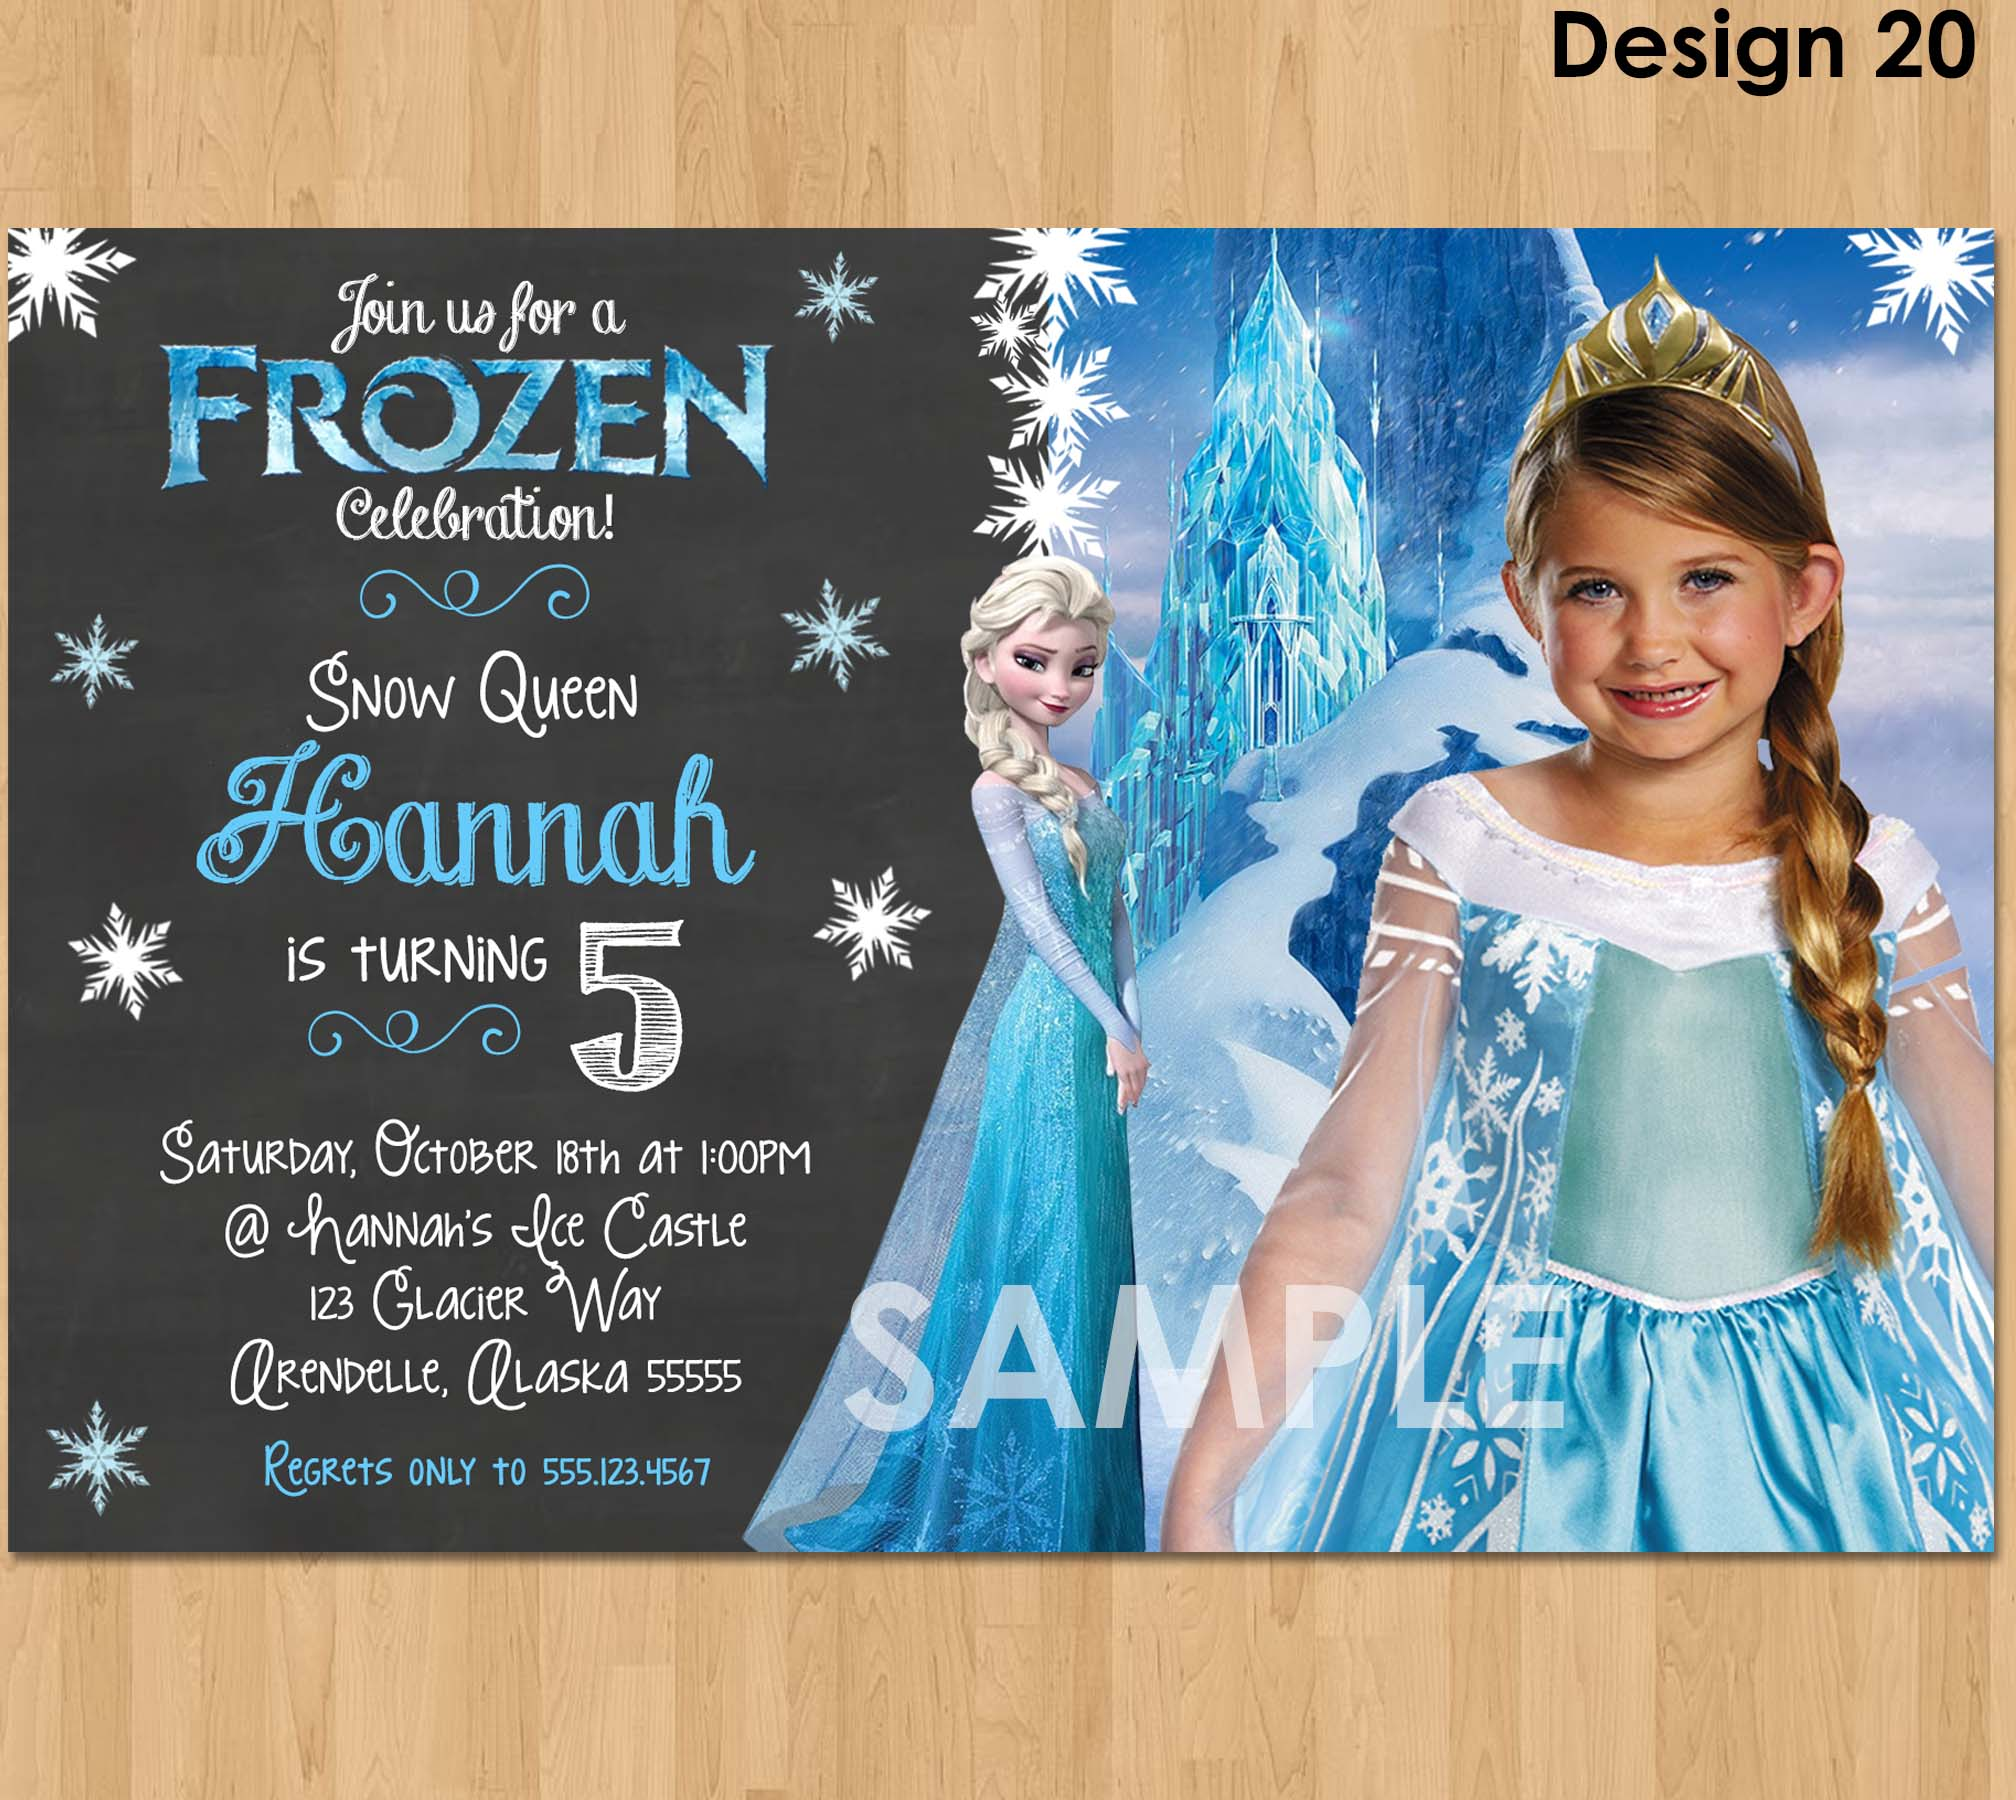 image about Frozen Invitations Printable identify Frozen Image Invitation - Frozen Chalkboard Invitation - Disney Frozen Birthday Invitation Celebration Invite Tips Printable Elsa Electronic Customized